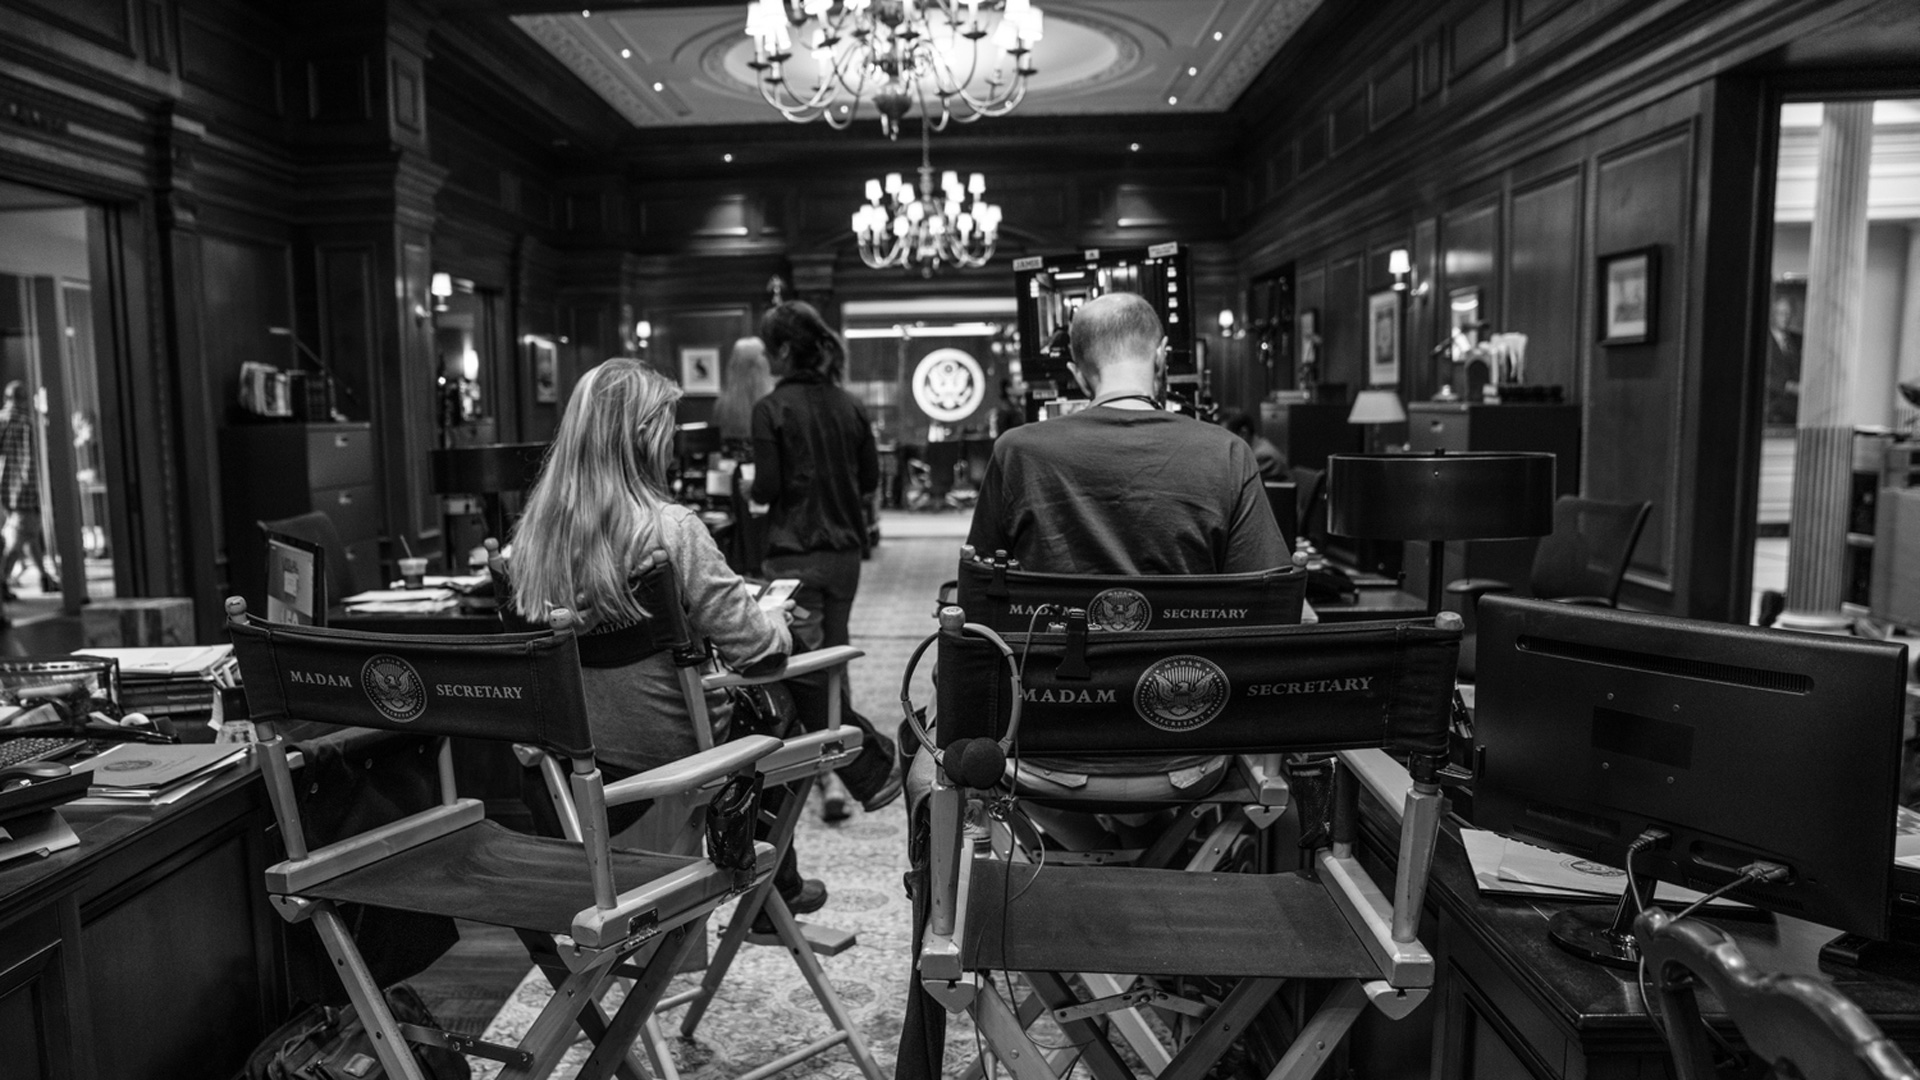 The Madam Secretary crew is hard at work in this black-and-white shot.